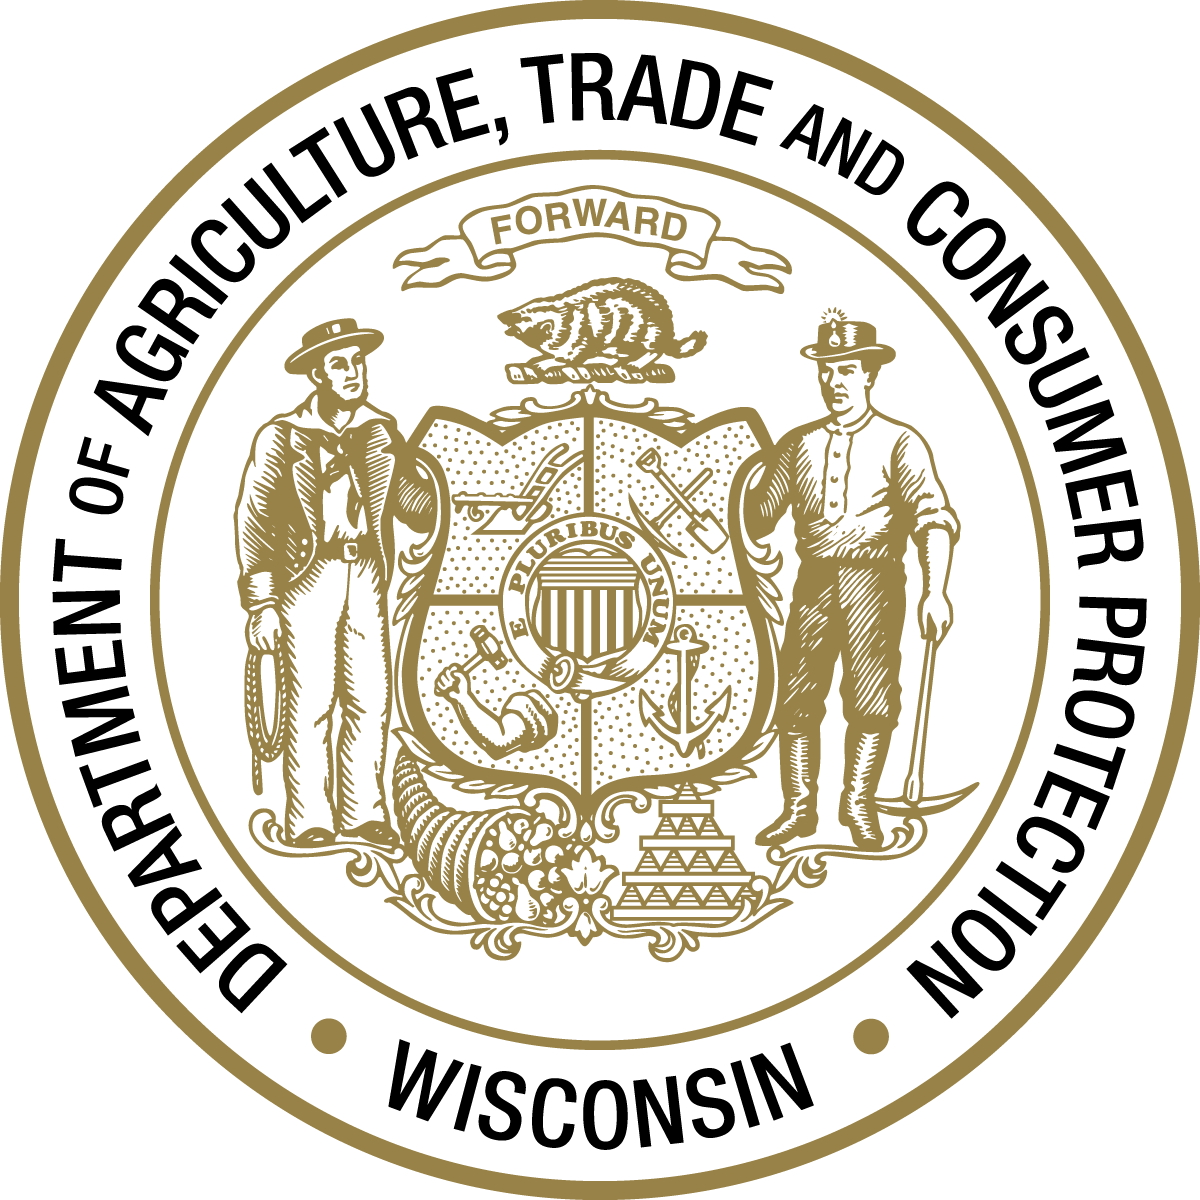 Statements from Wisconsin Agricultural Leaders on Governor's Climate Change Task Force Report